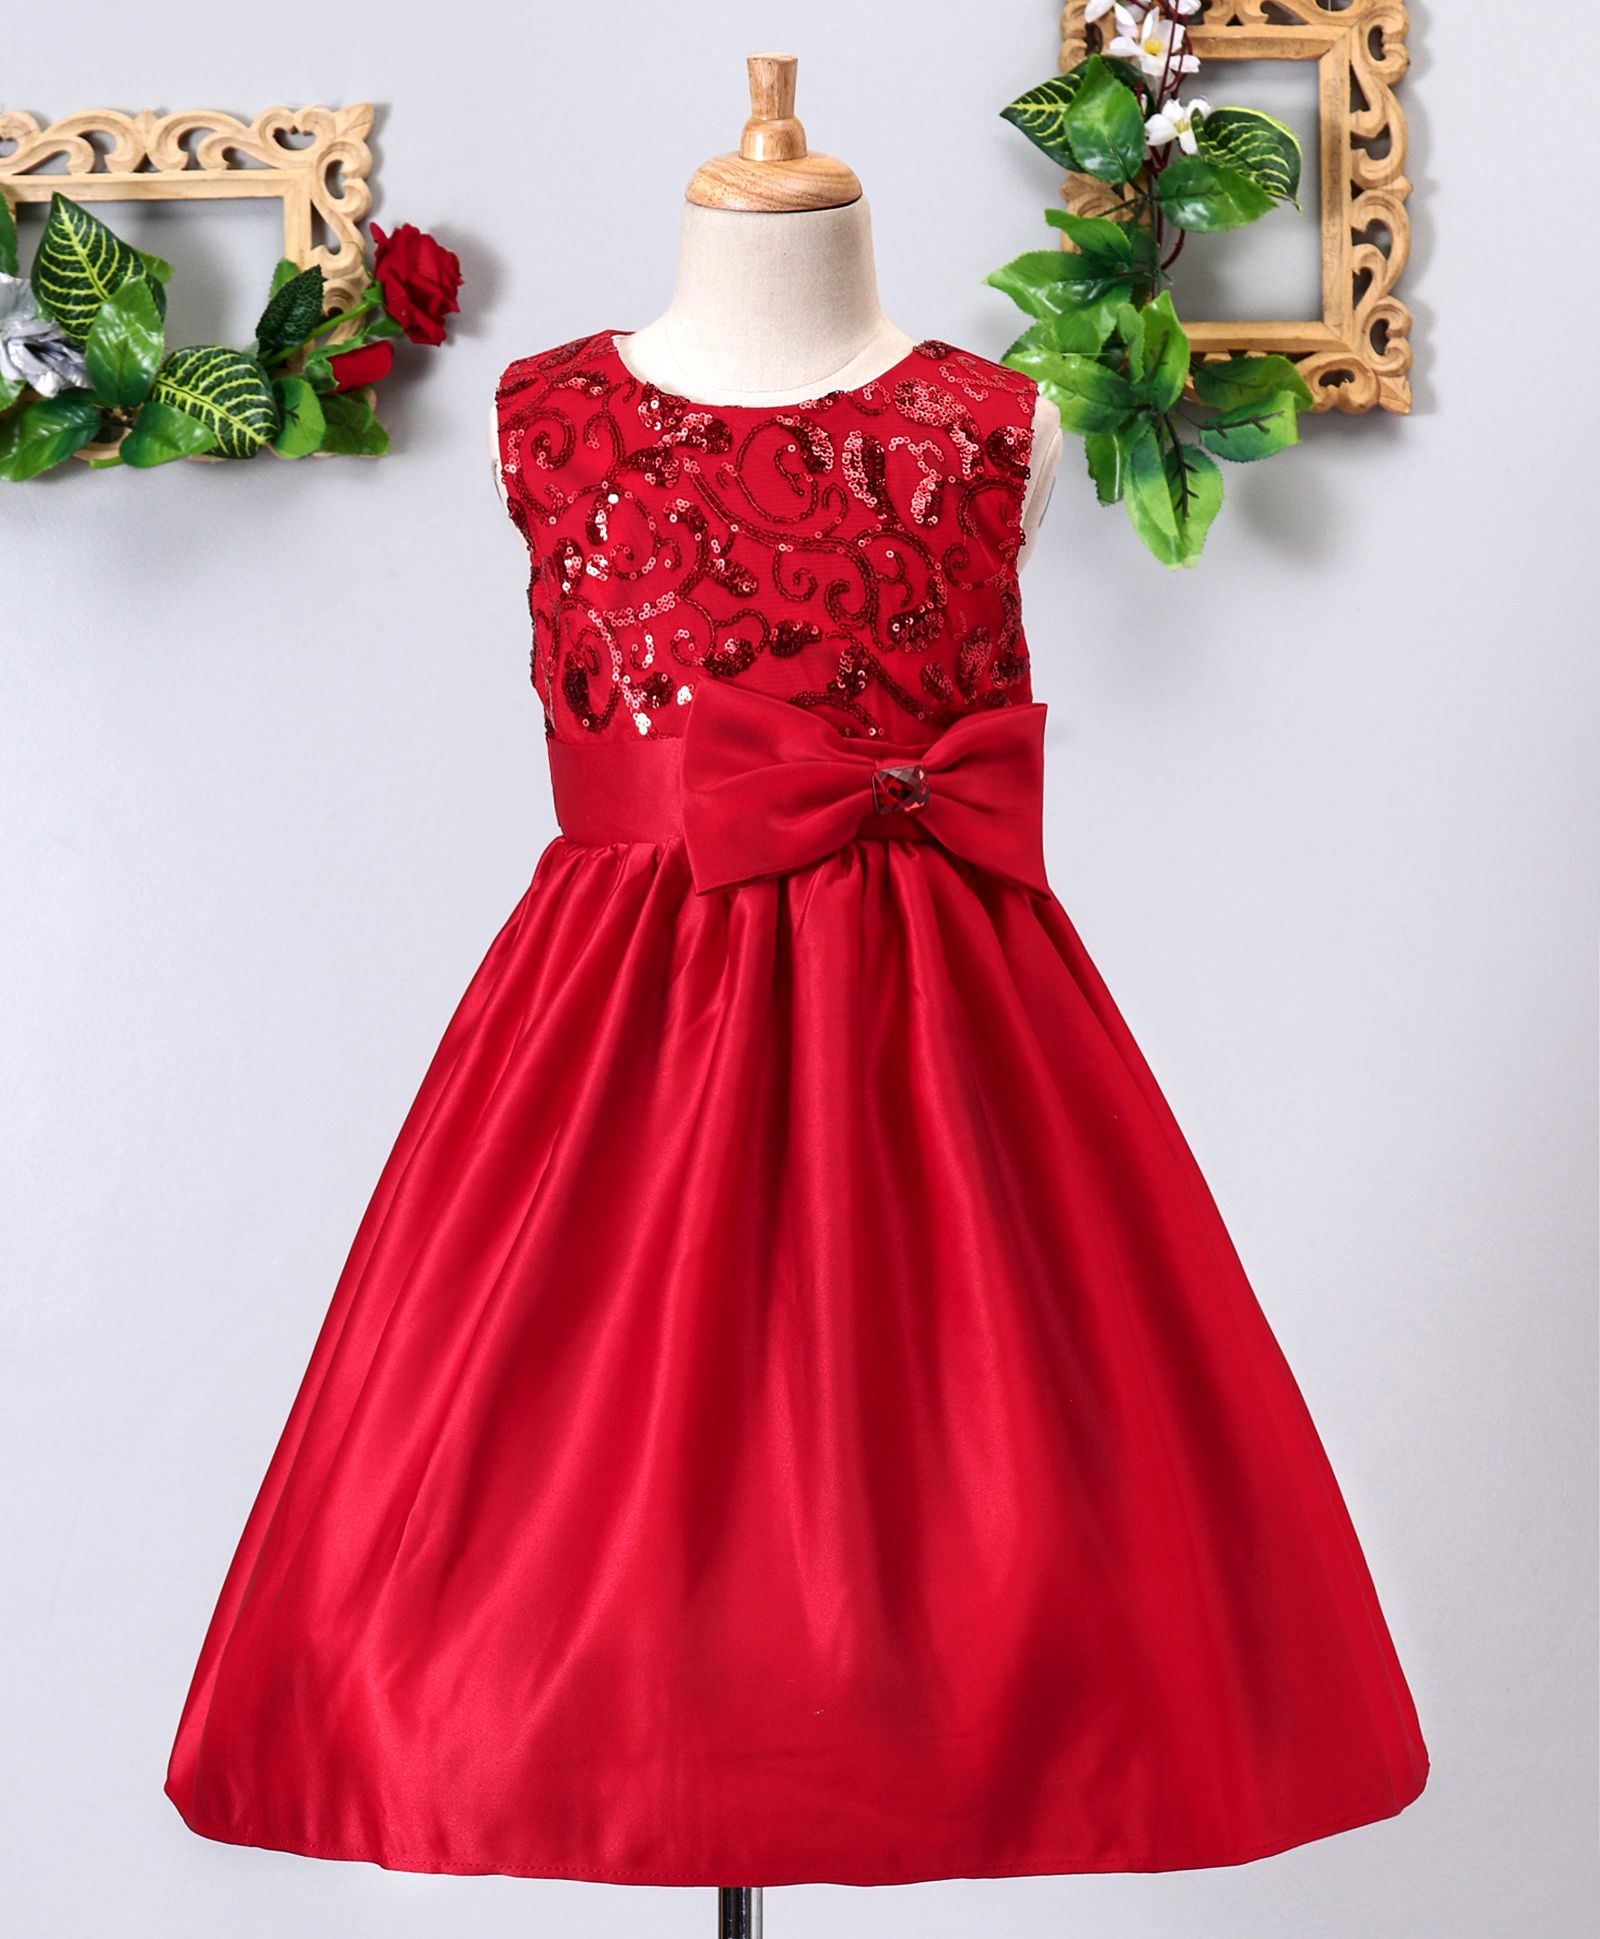 dc4f0df588 Buy Mark & Mia Sequined Bow Applique Sleeveless Dress Red for Girls (3-4  Years) Online in India, Shop at FirstCry.com - 2350433